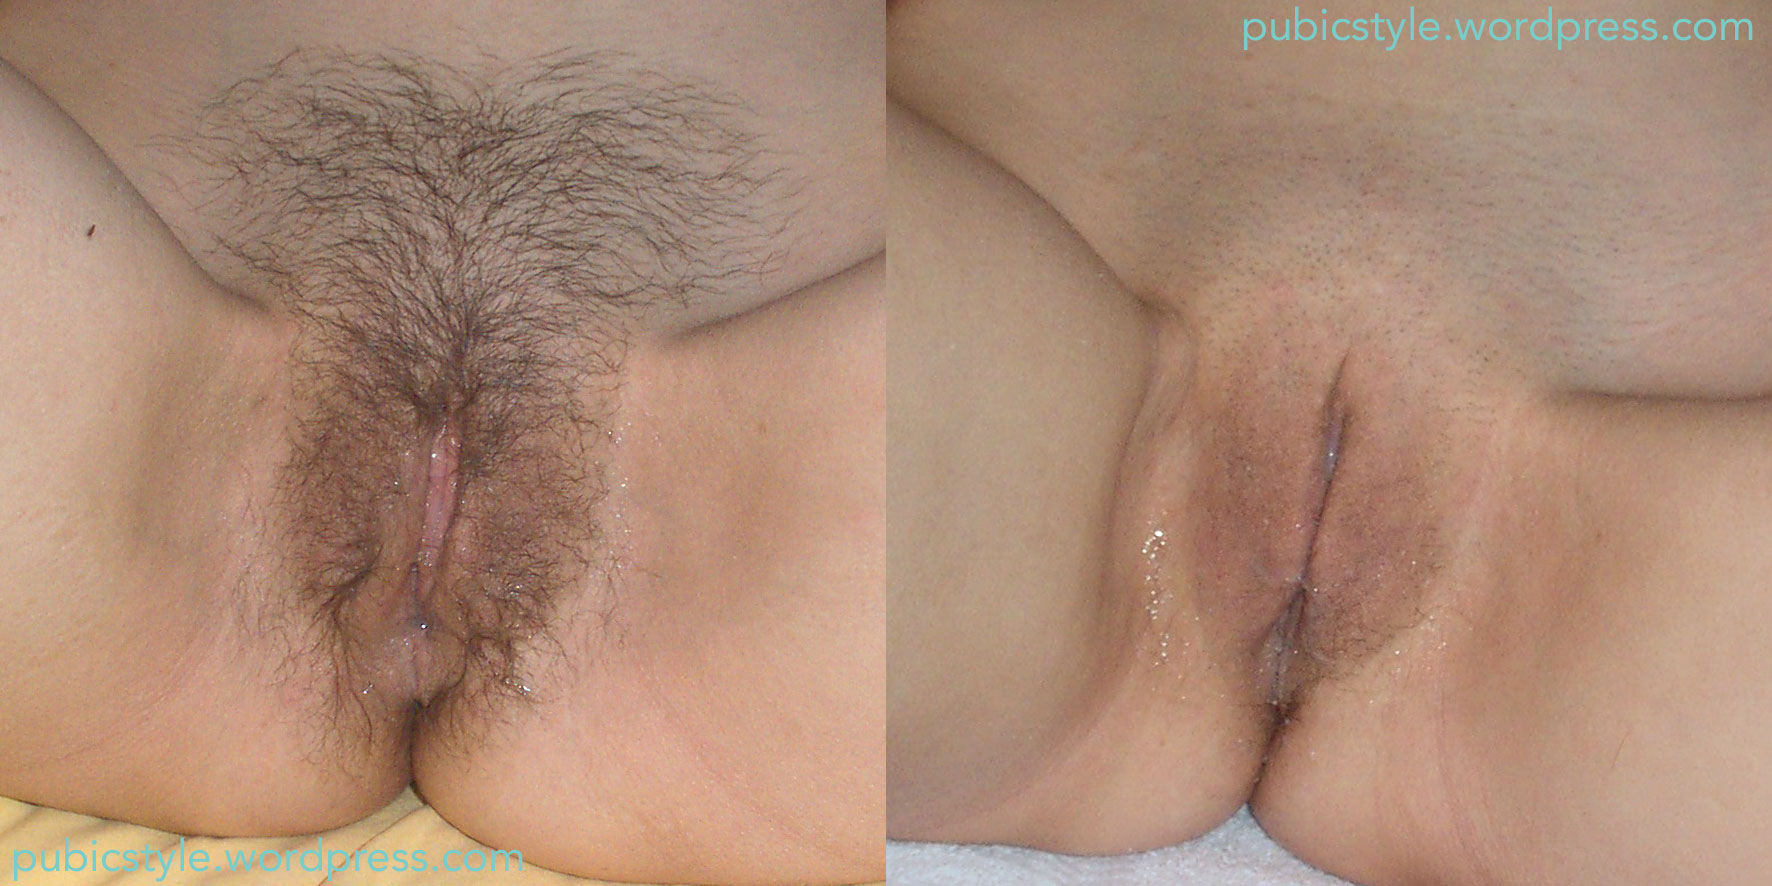 pubicstyle | featuring women's pubic hair styles, and pubic hair